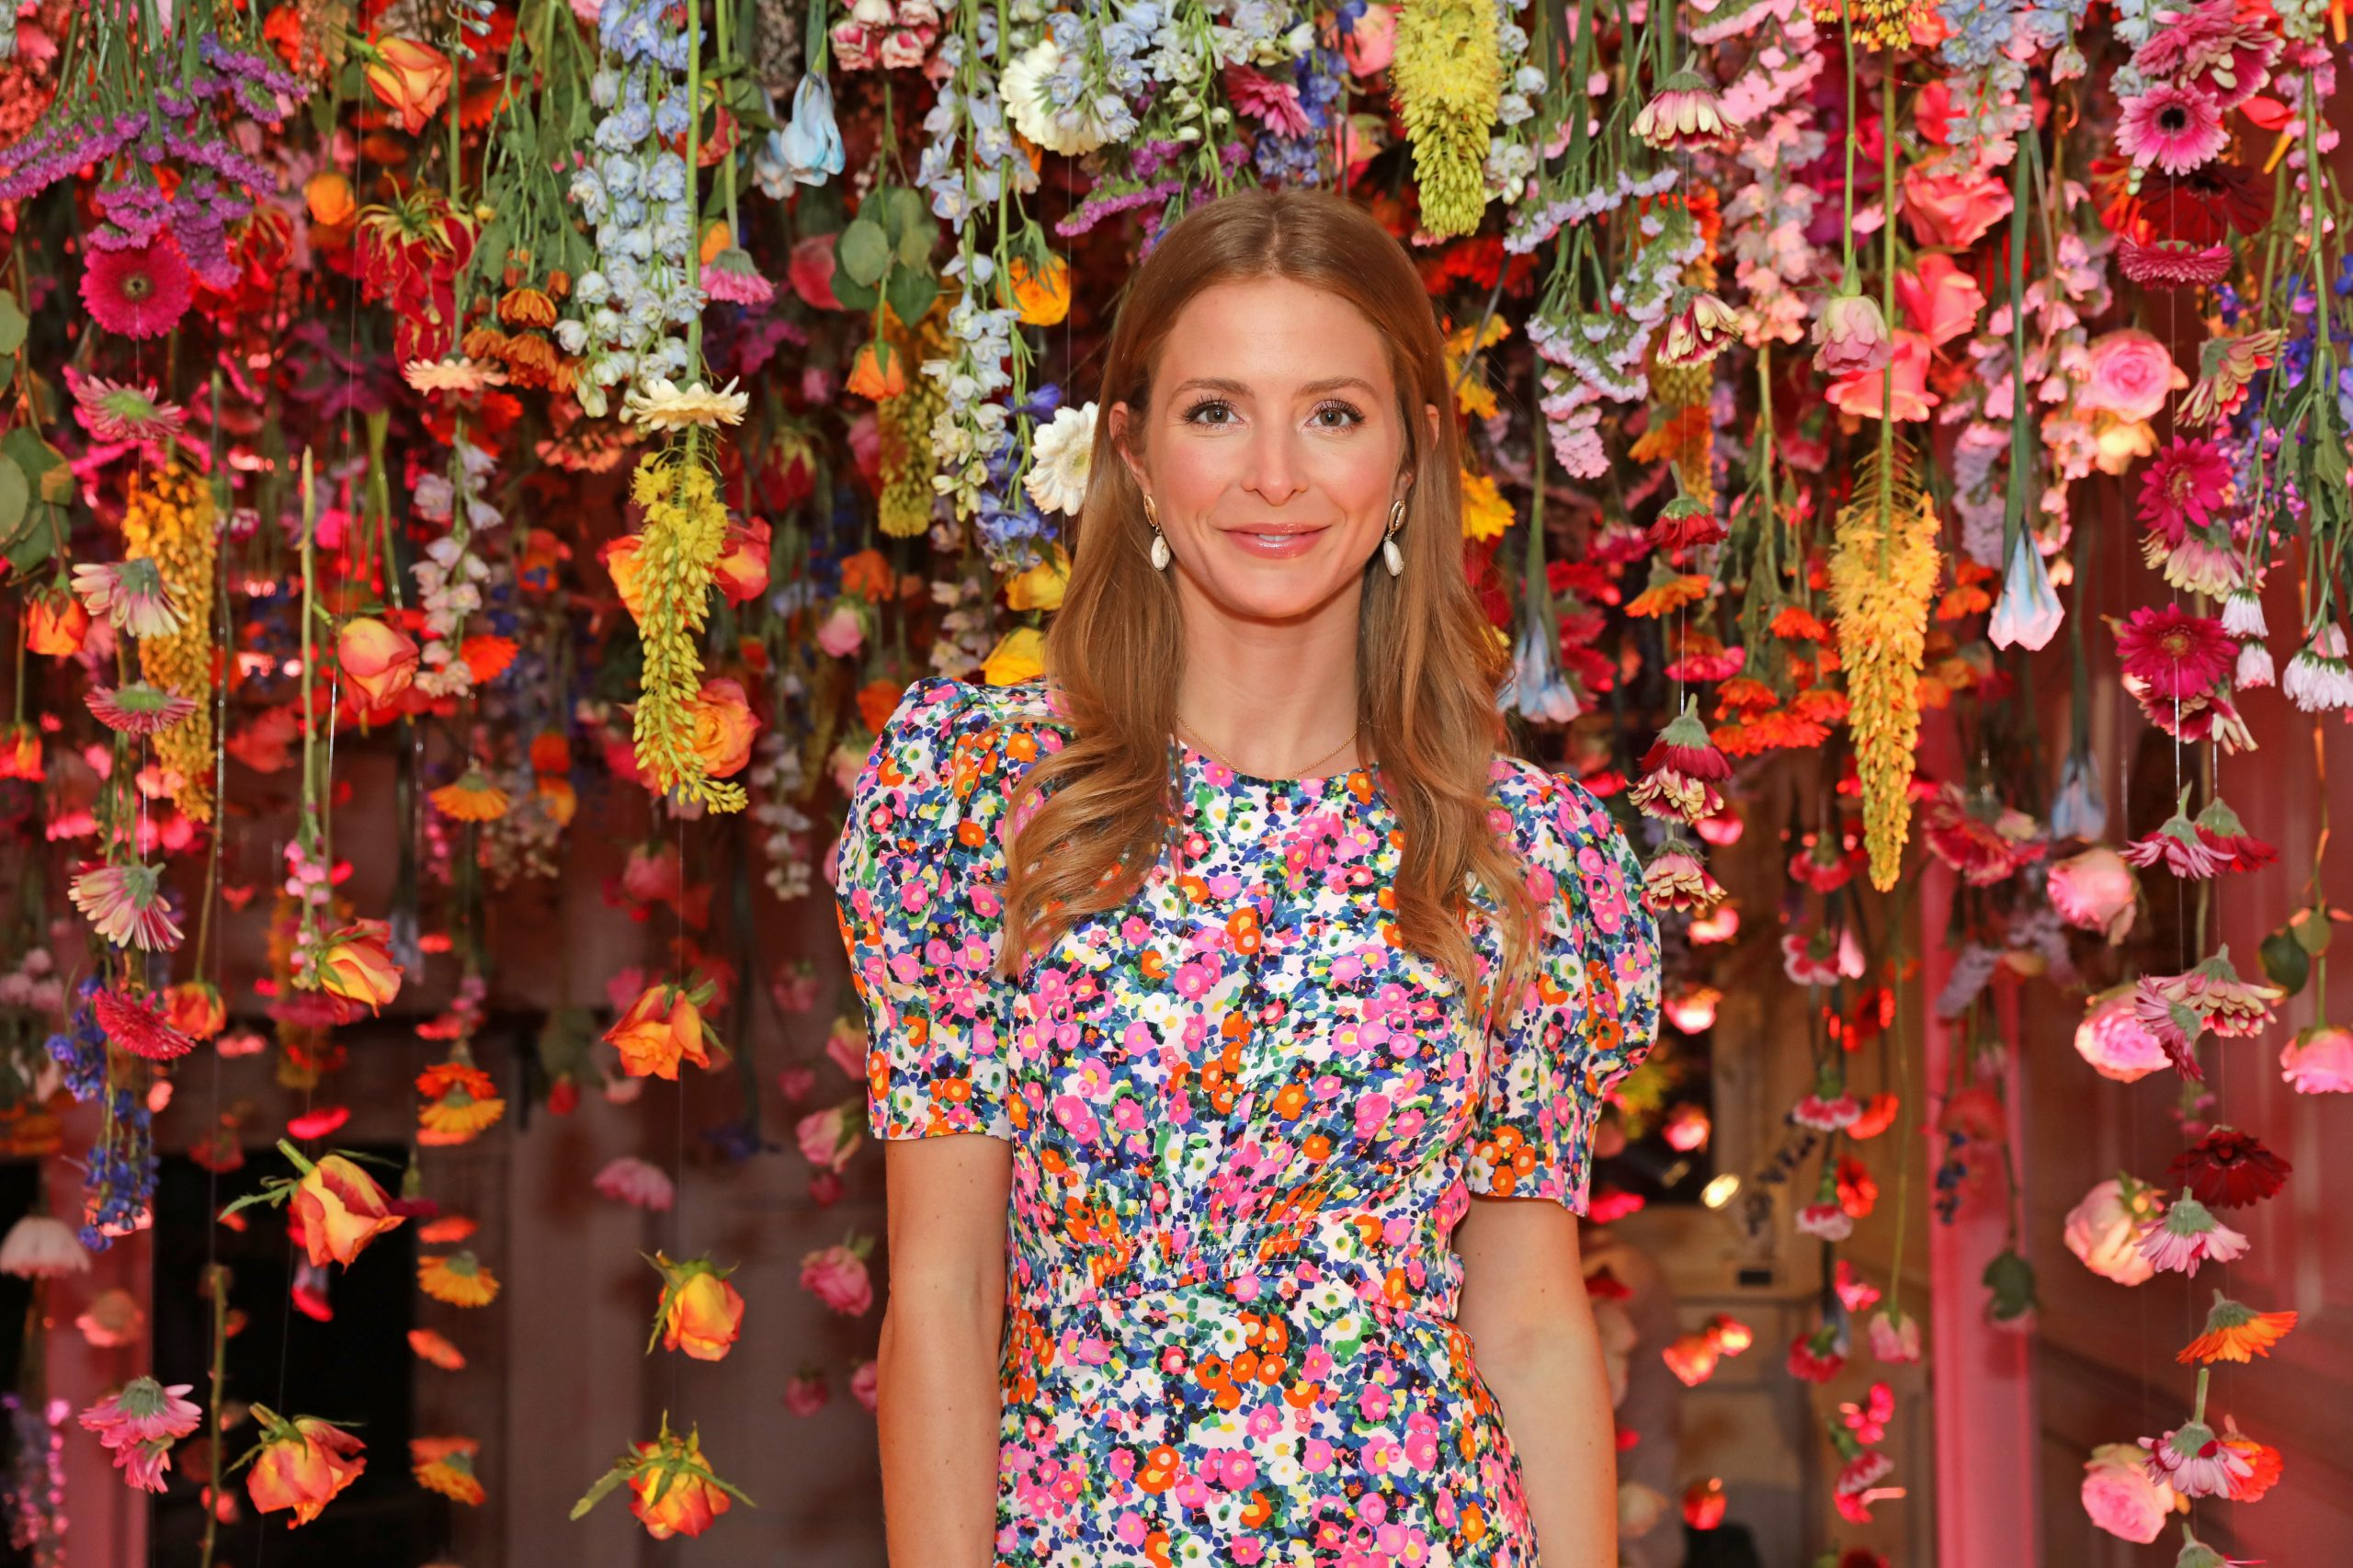 Millie Mackintosh sparks pregnancy debate with Instagram photo